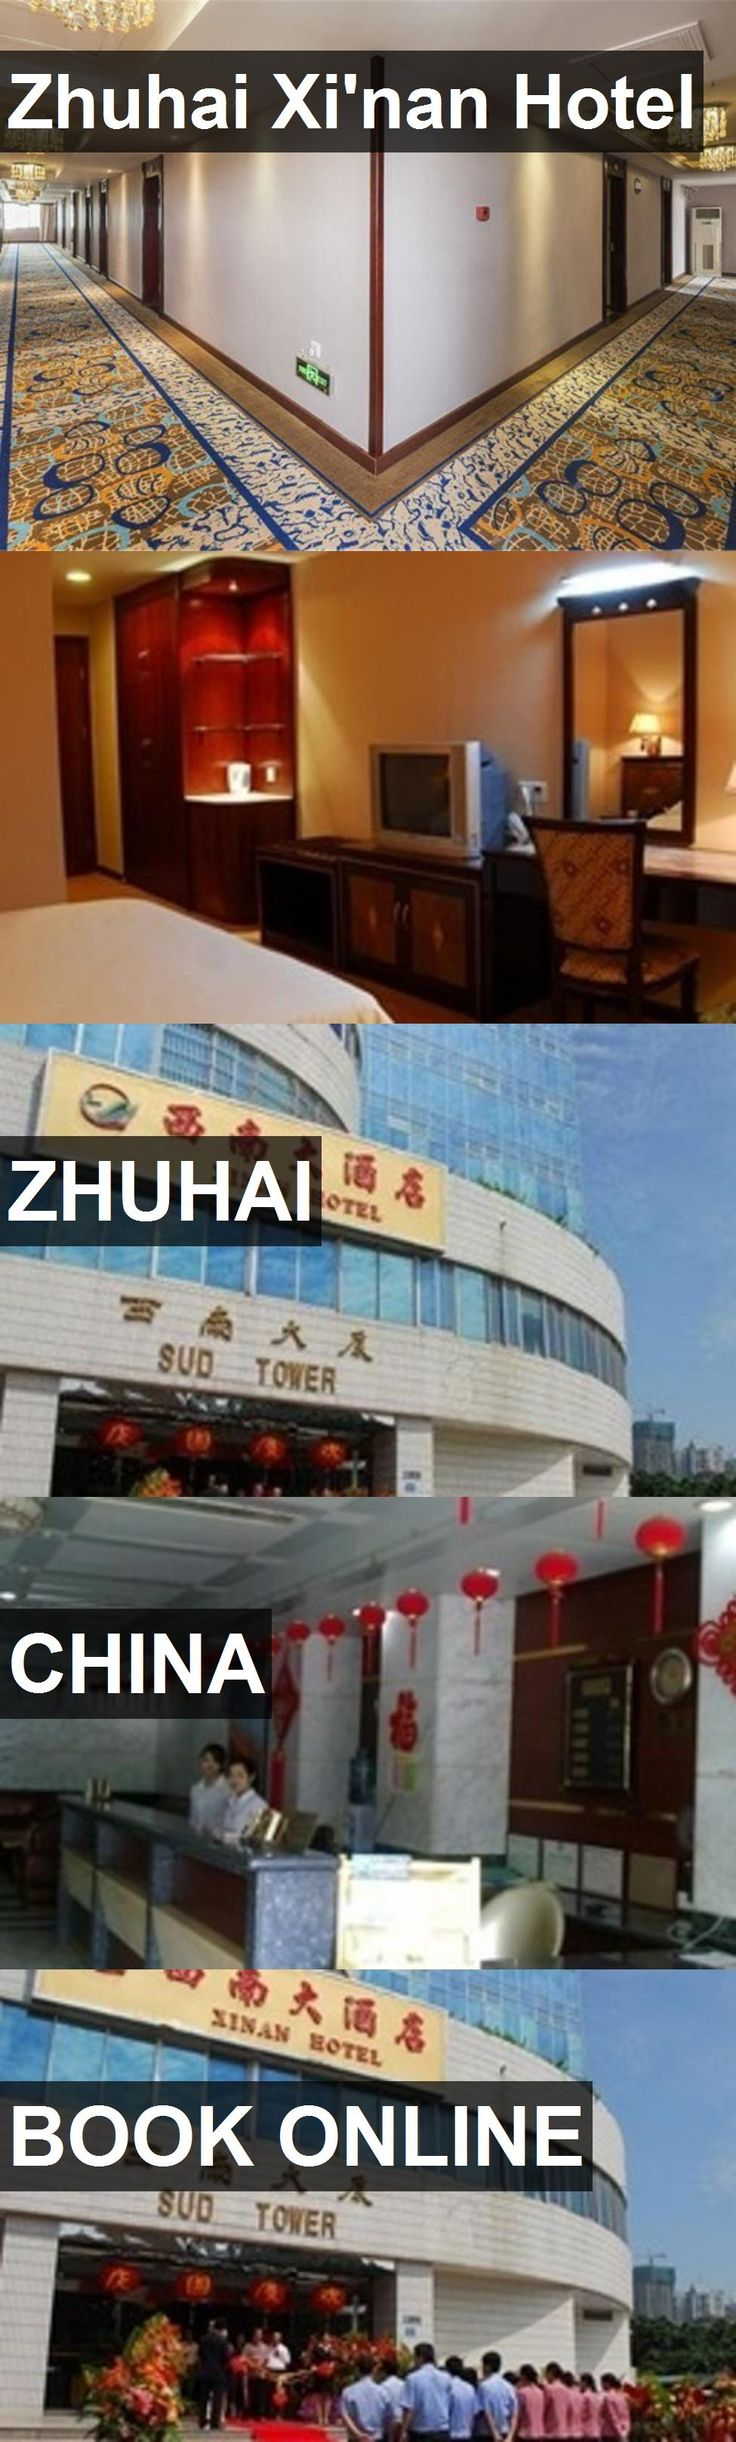 Zhuhai Xi'nan Hotel in Zhuhai, China. For more information, photos, reviews and best prices please follow the link. #China #Zhuhai #travel #vacation #hotel